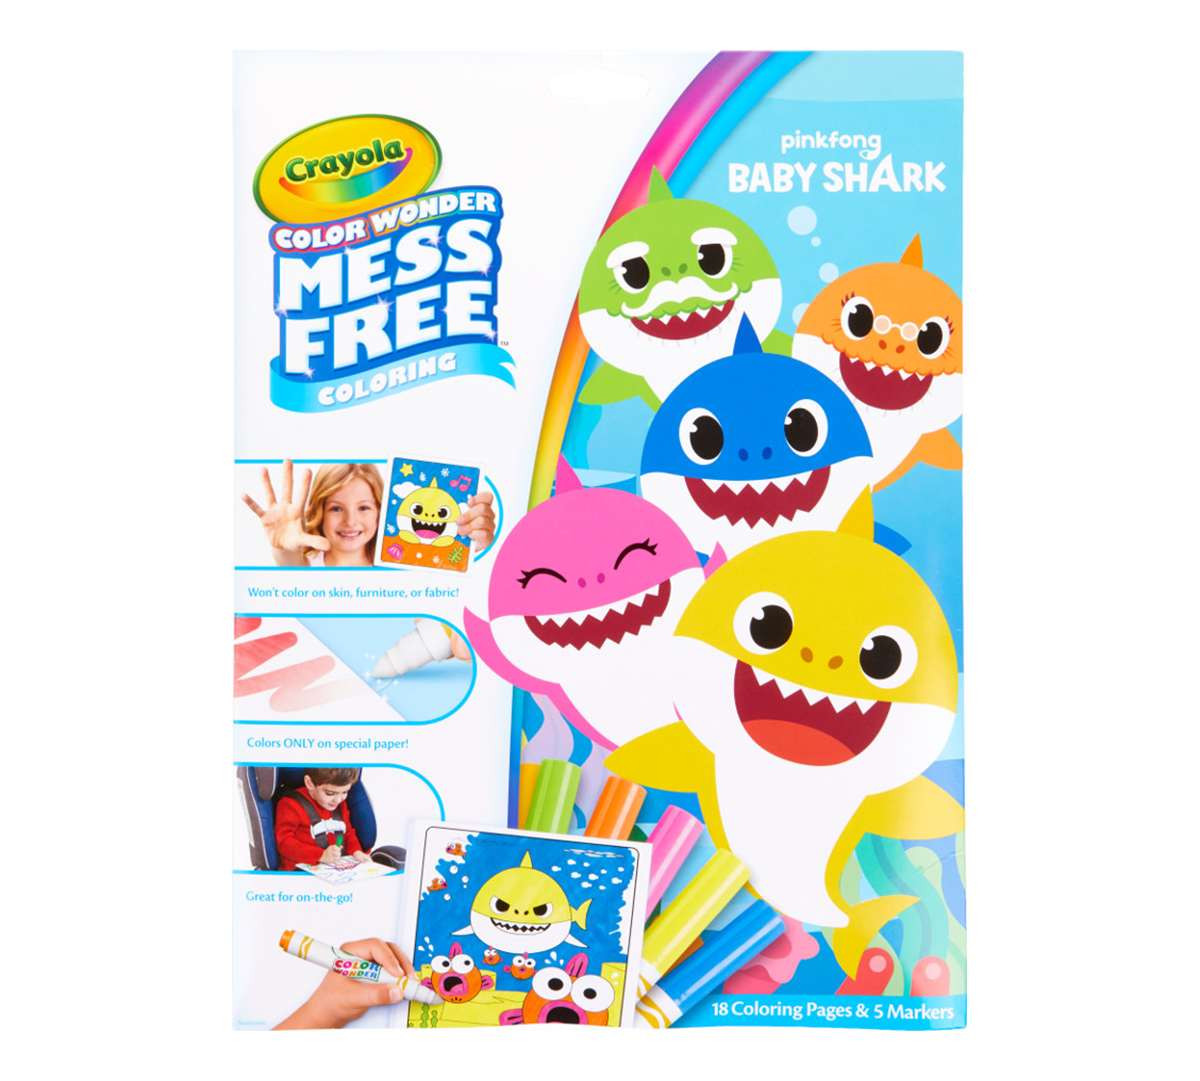 Crayola Color Wonder Pinkfong Baby Shark Coloring Set ...